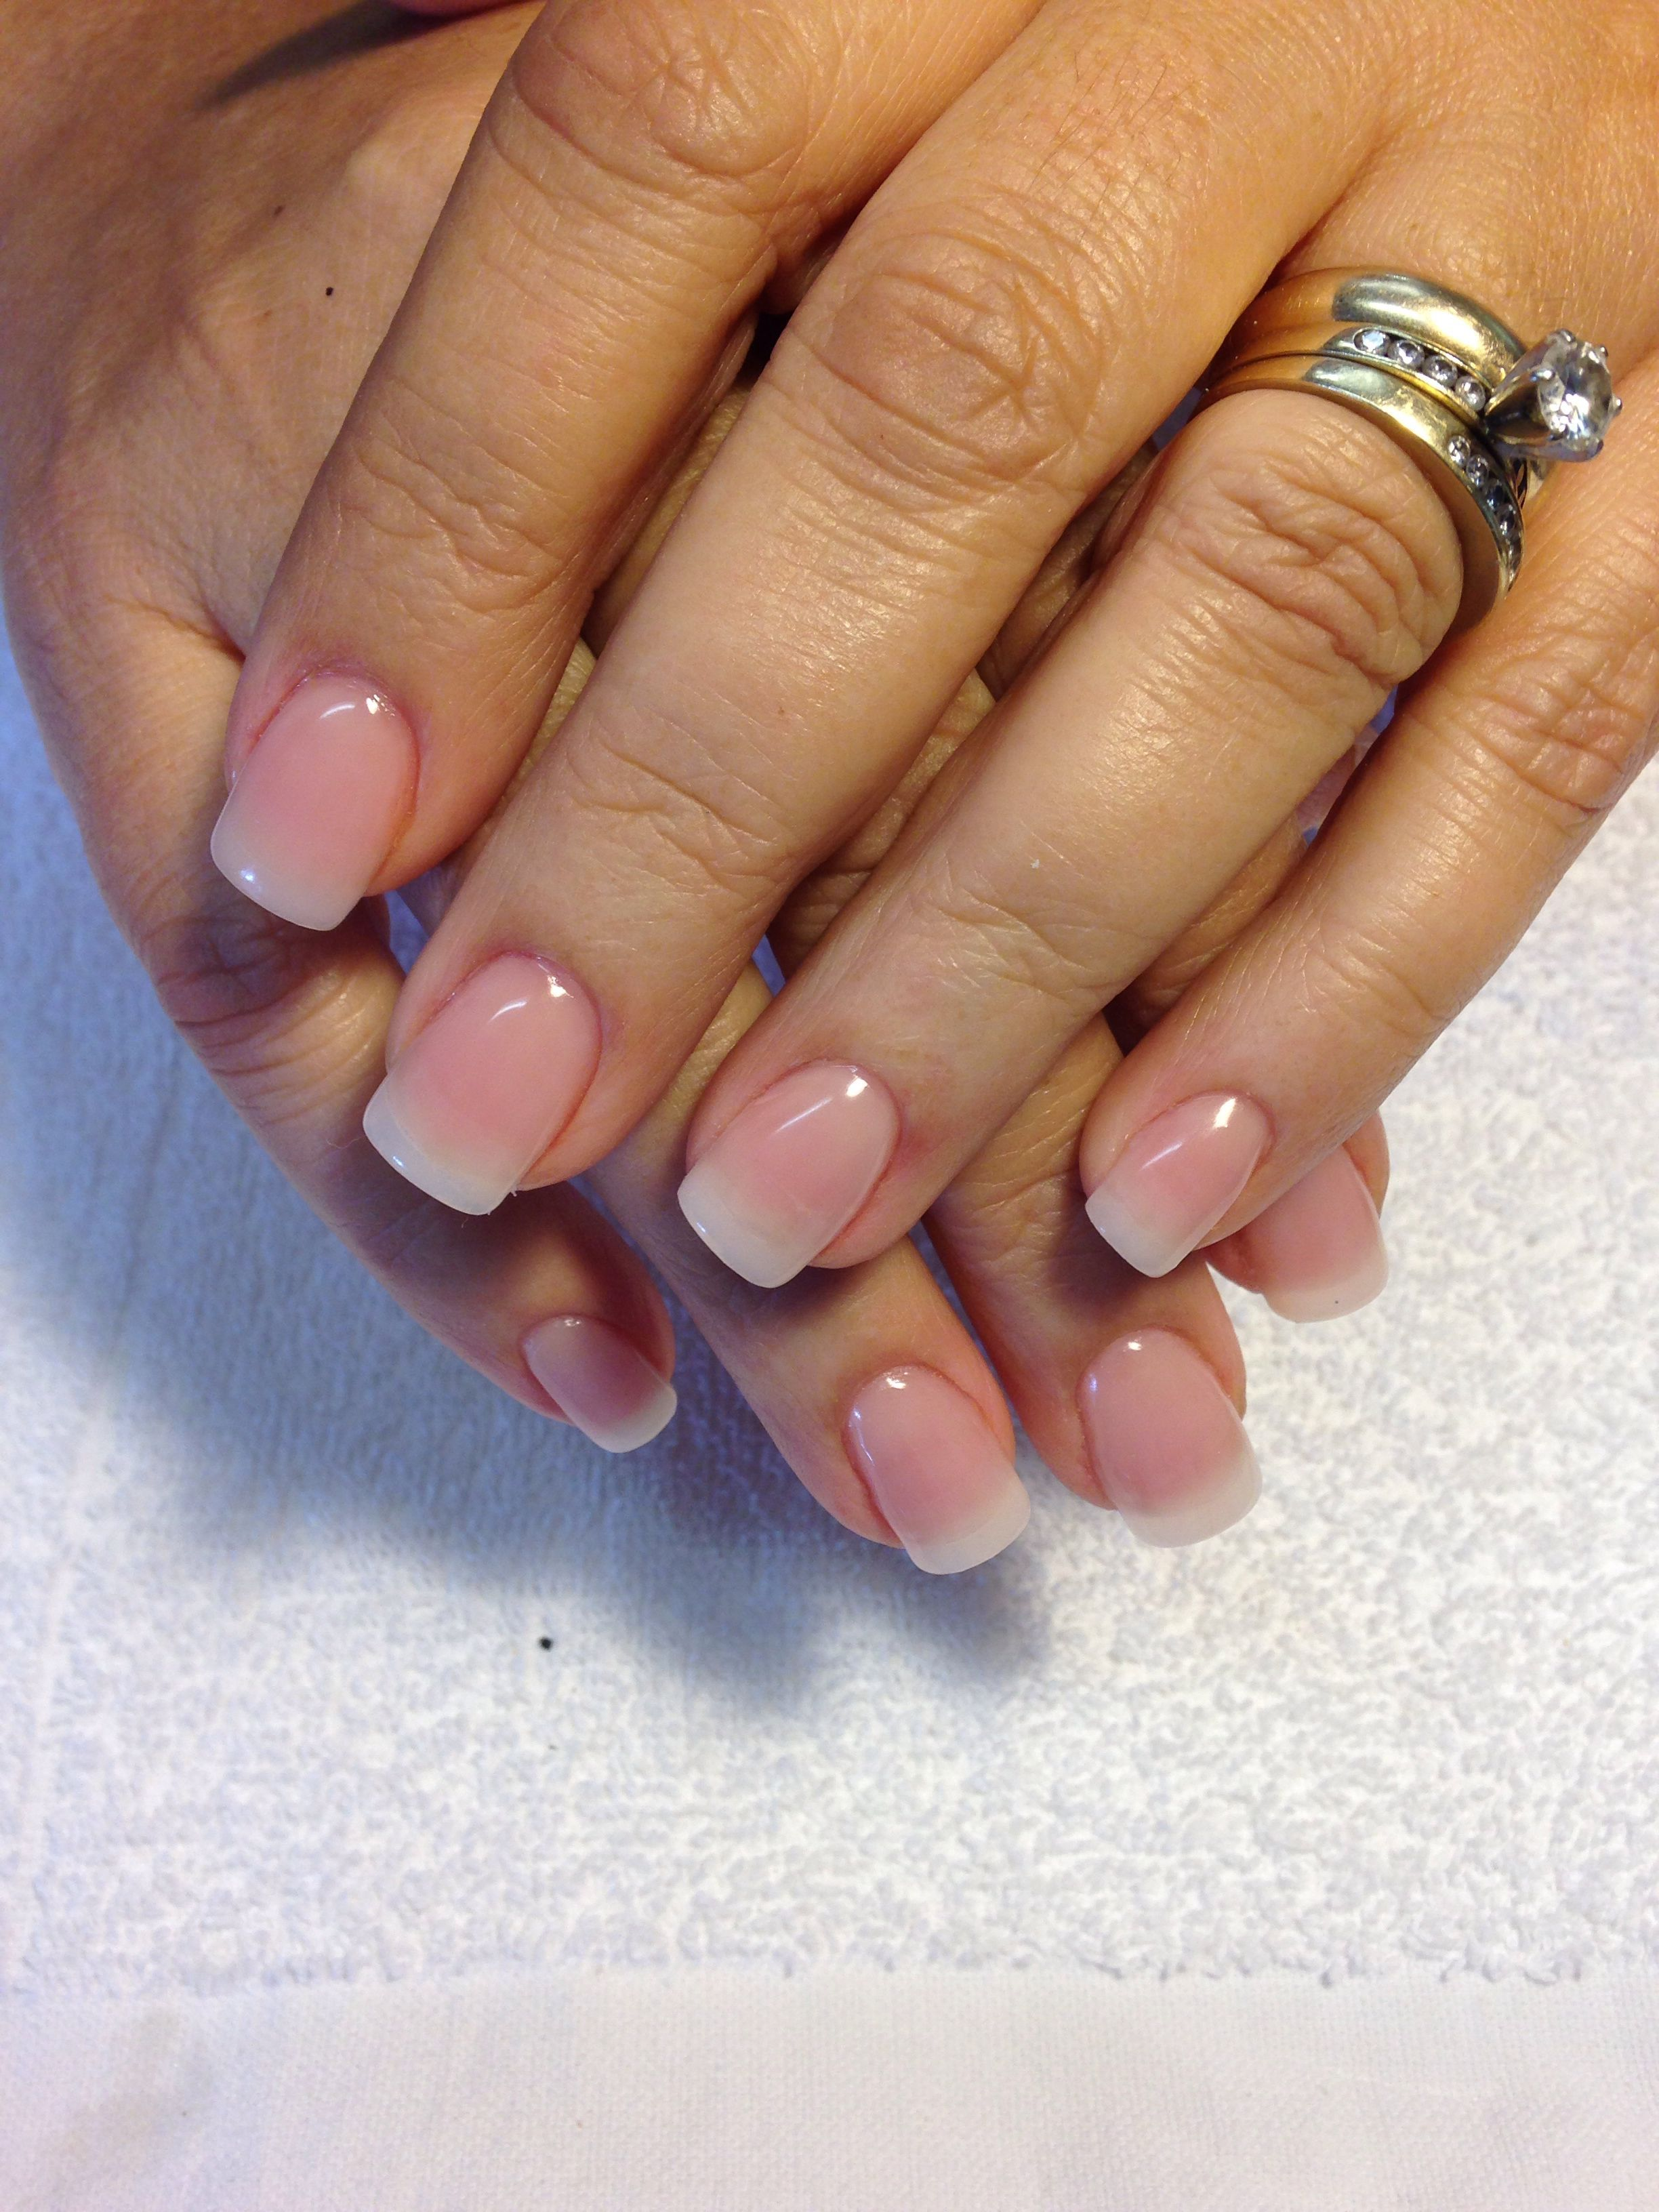 Acrylic But Looking Natural Wedding Nails Classy Acrylic Nails Natural Acrylic Nails Natural Looking Acrylic Nails